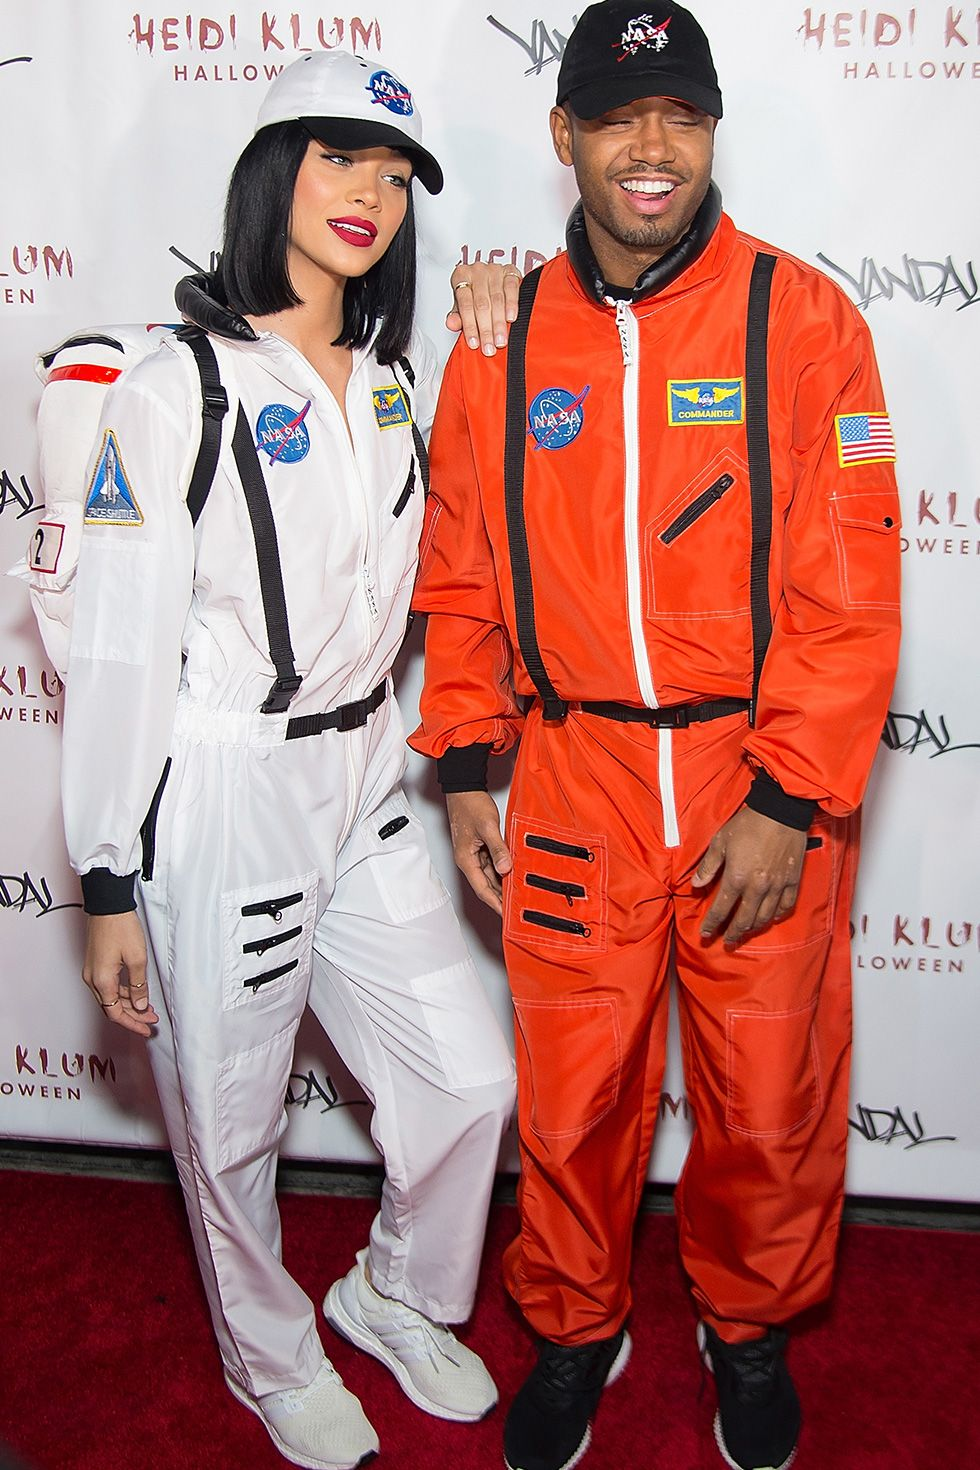 Jasmine Sanders and Actor Terrence J - Astronauts In 2016, model Jasmine Sanders and actor Terrence J wore matching NASA astronaut costumes for Heidi Klum's 17th annual Halloween party at Vandal in New York City.